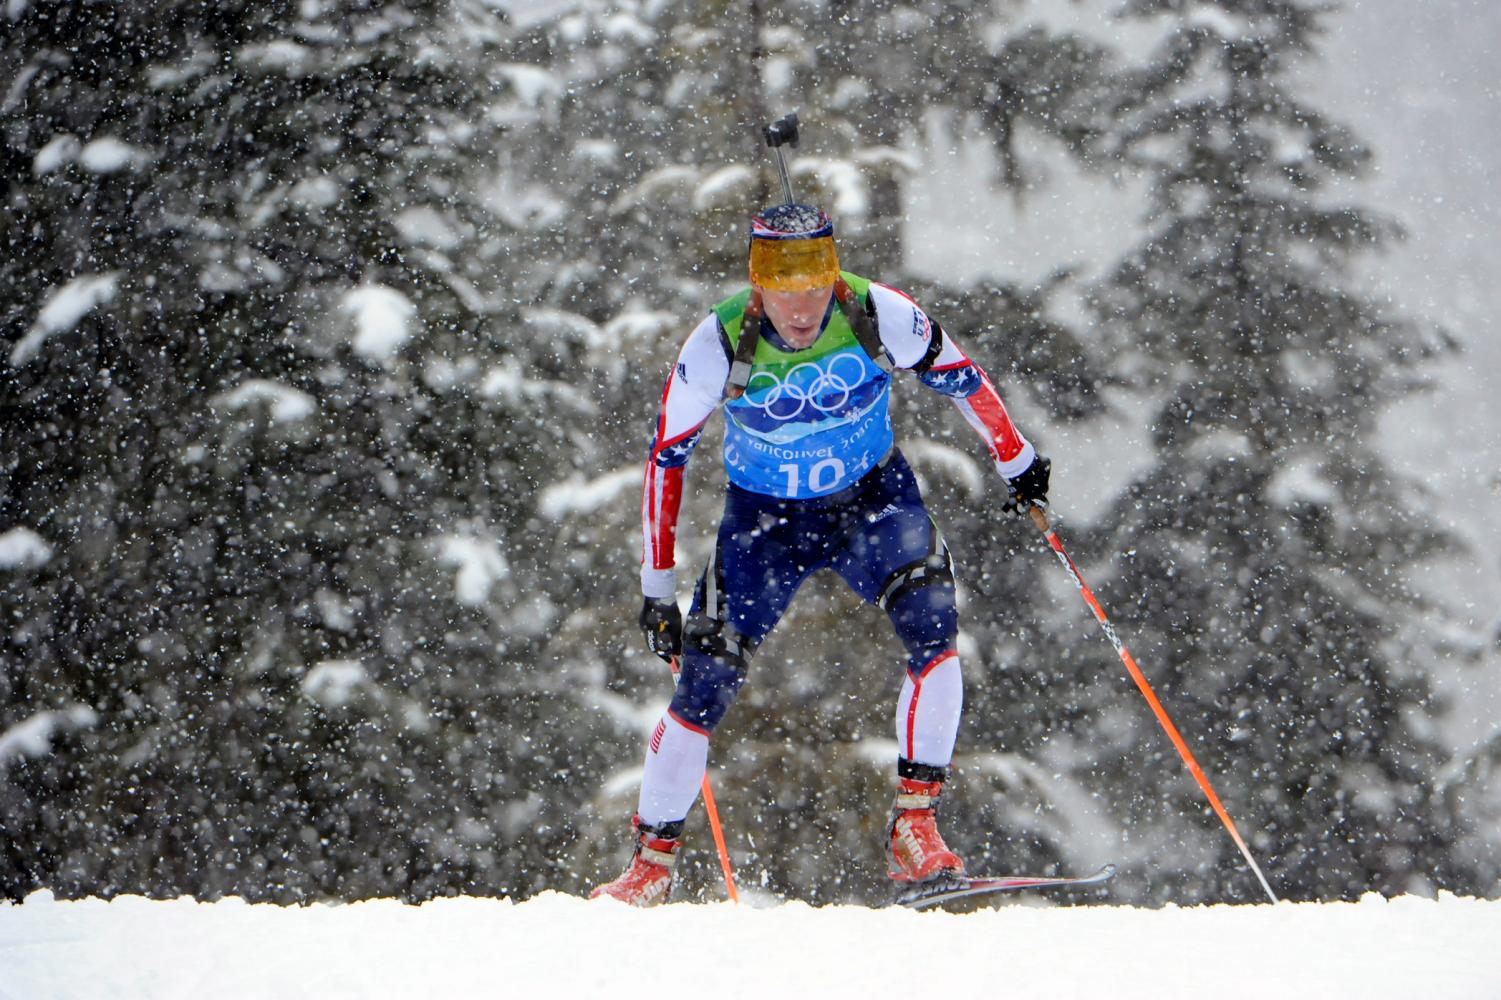 Olympic skier competing in the 2018 Winter Olympic games.